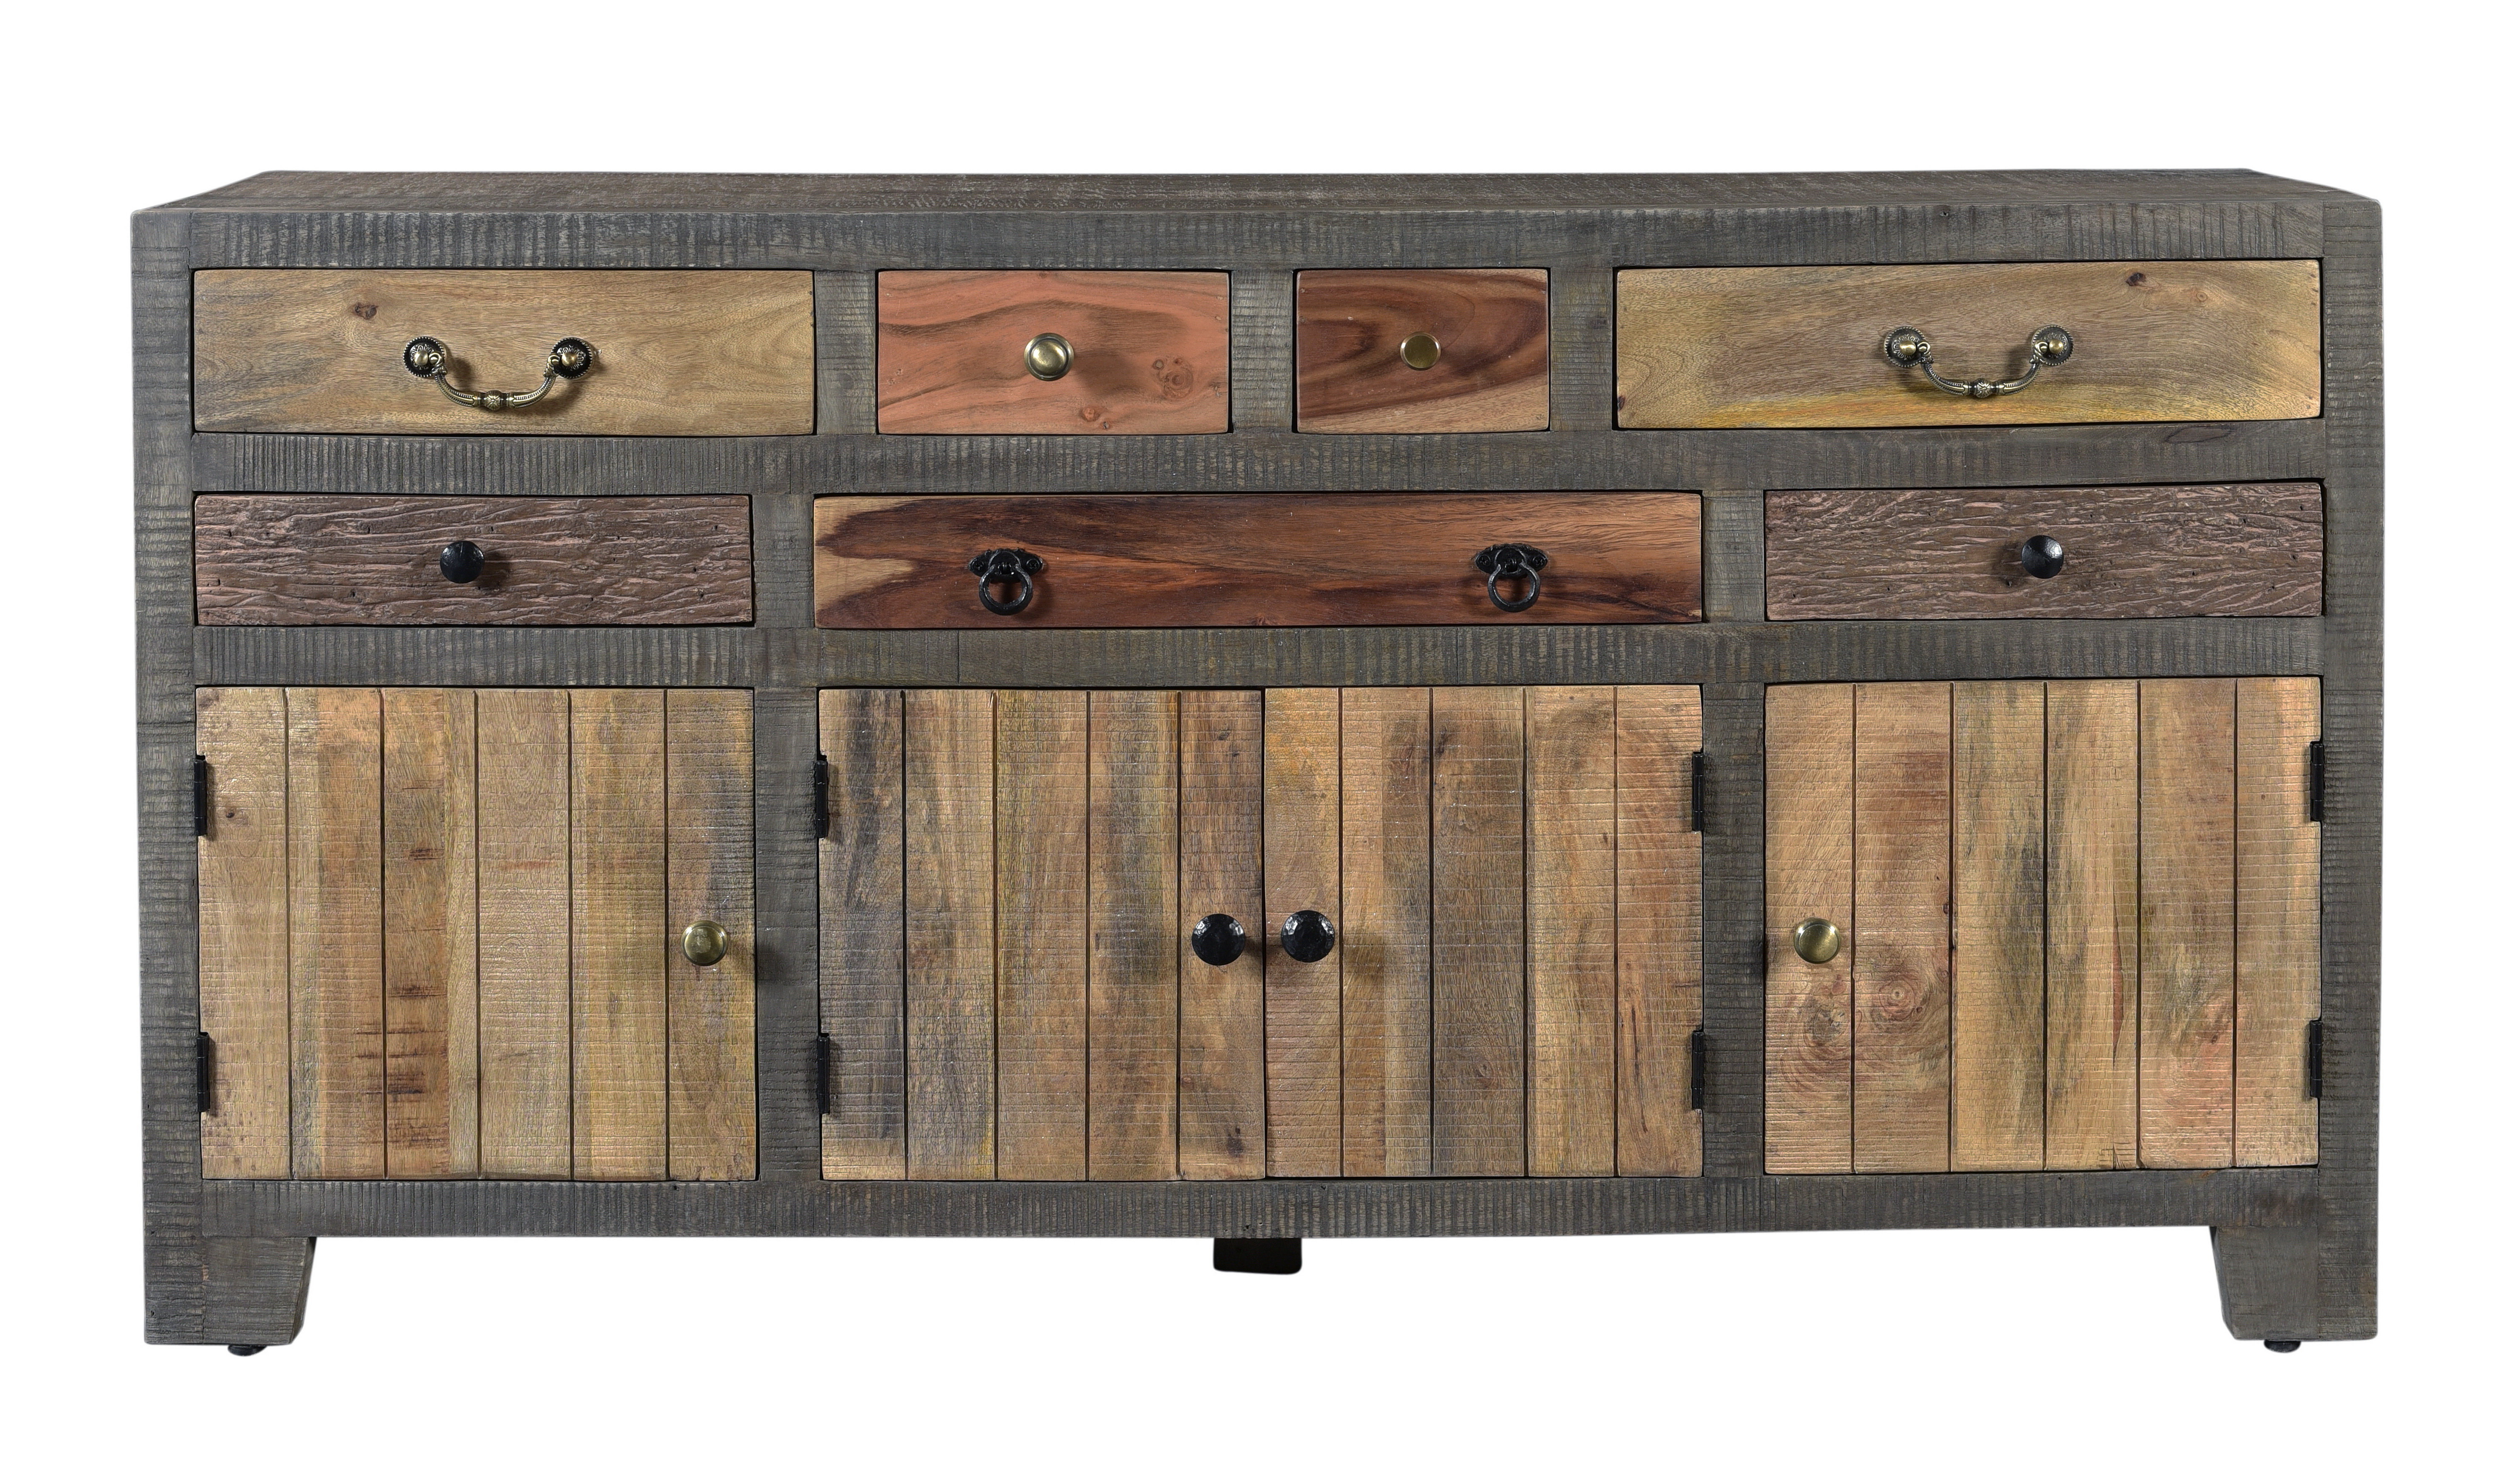 Joss & Main Inside Most Popular 4 Door/4 Drawer Metal Inserts Sideboards (Gallery 18 of 20)